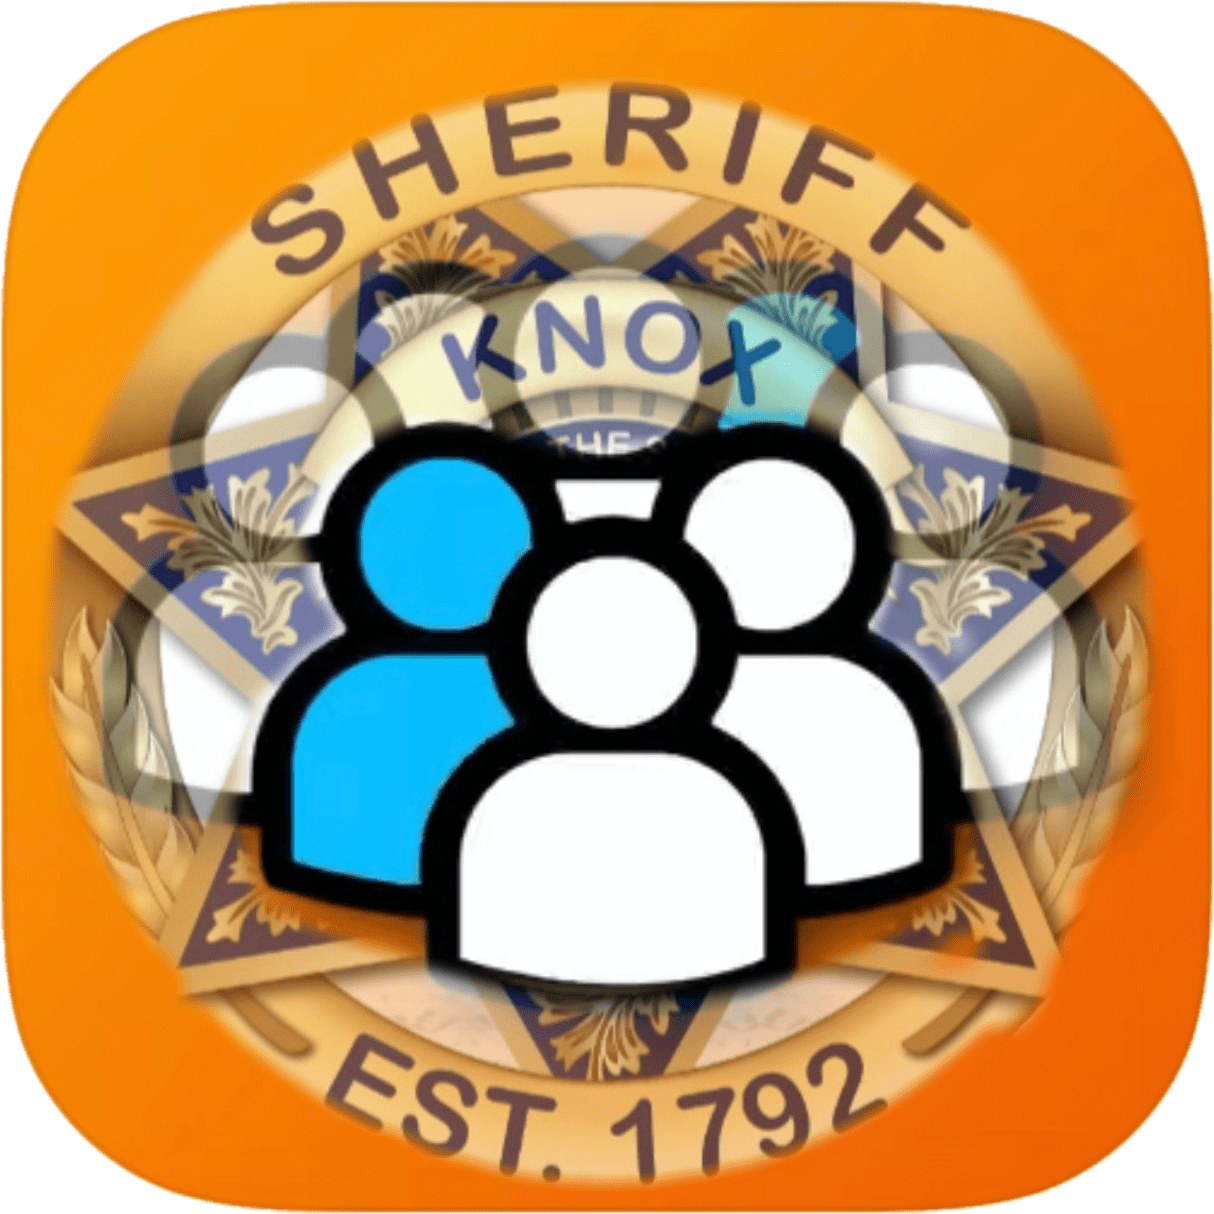 KCSO badge on orange backgreound with people figures clipart overlay